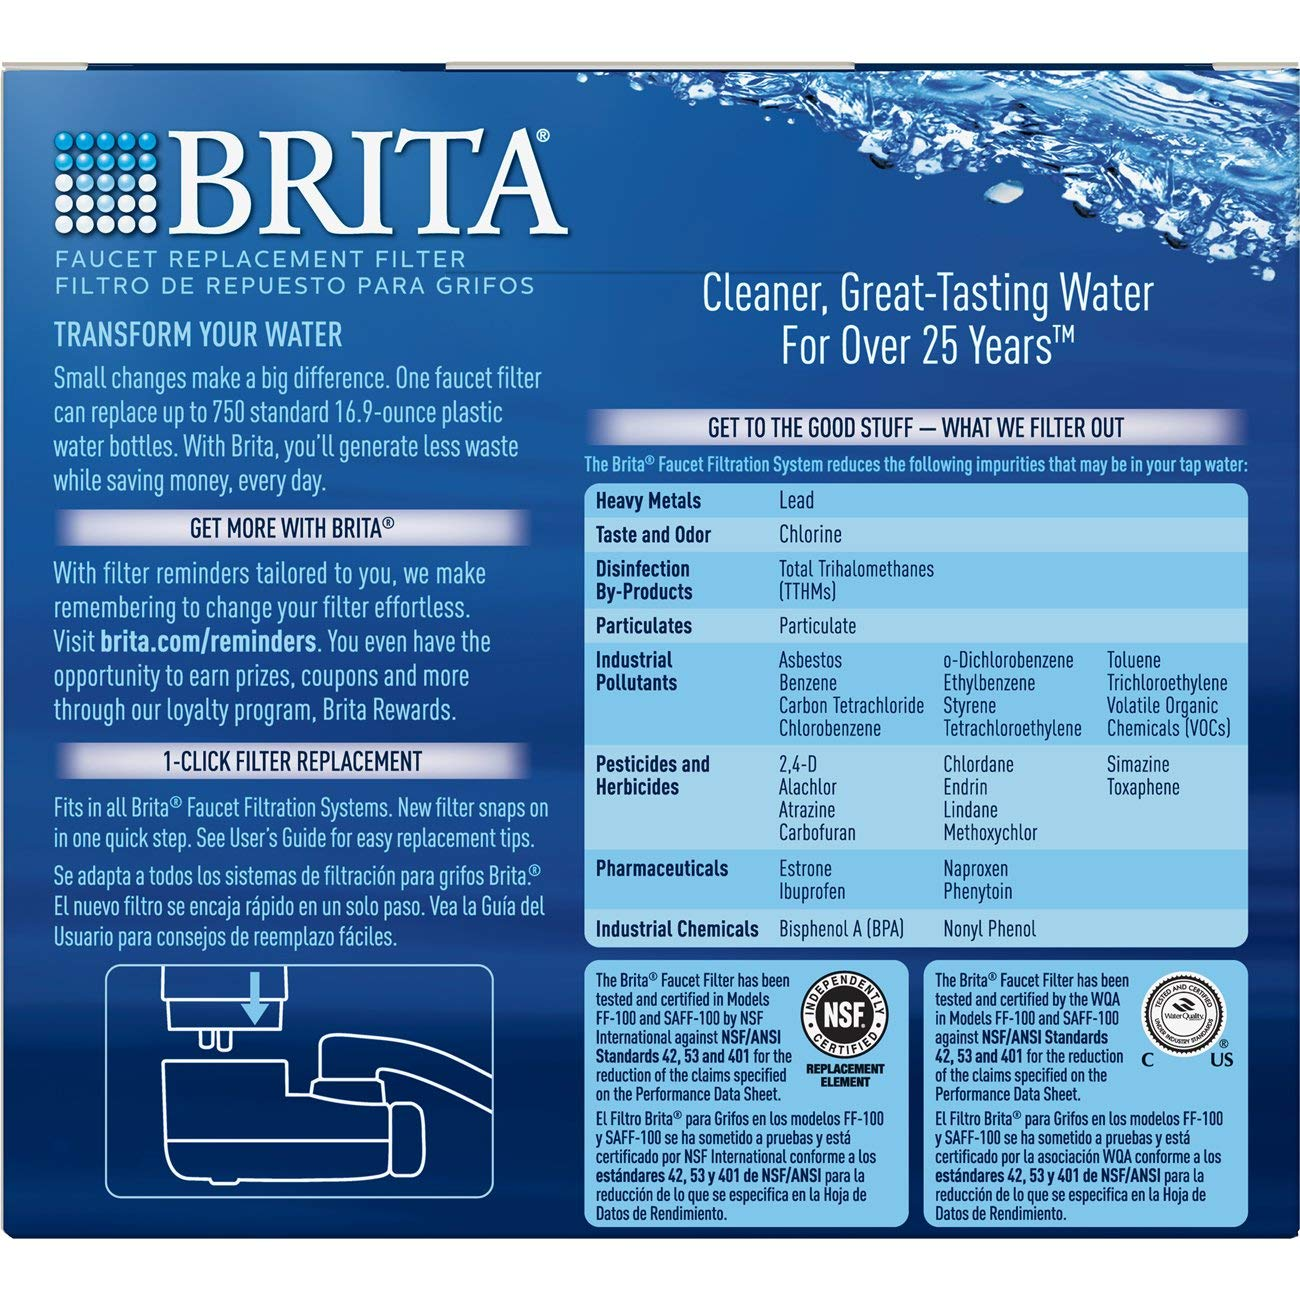 Brita Tap Water Filter, Water Filtration System Replacement Filters For Faucets, Reduces Lead, BPA Free – Chrome, 2 Count by Brita (Image #3)